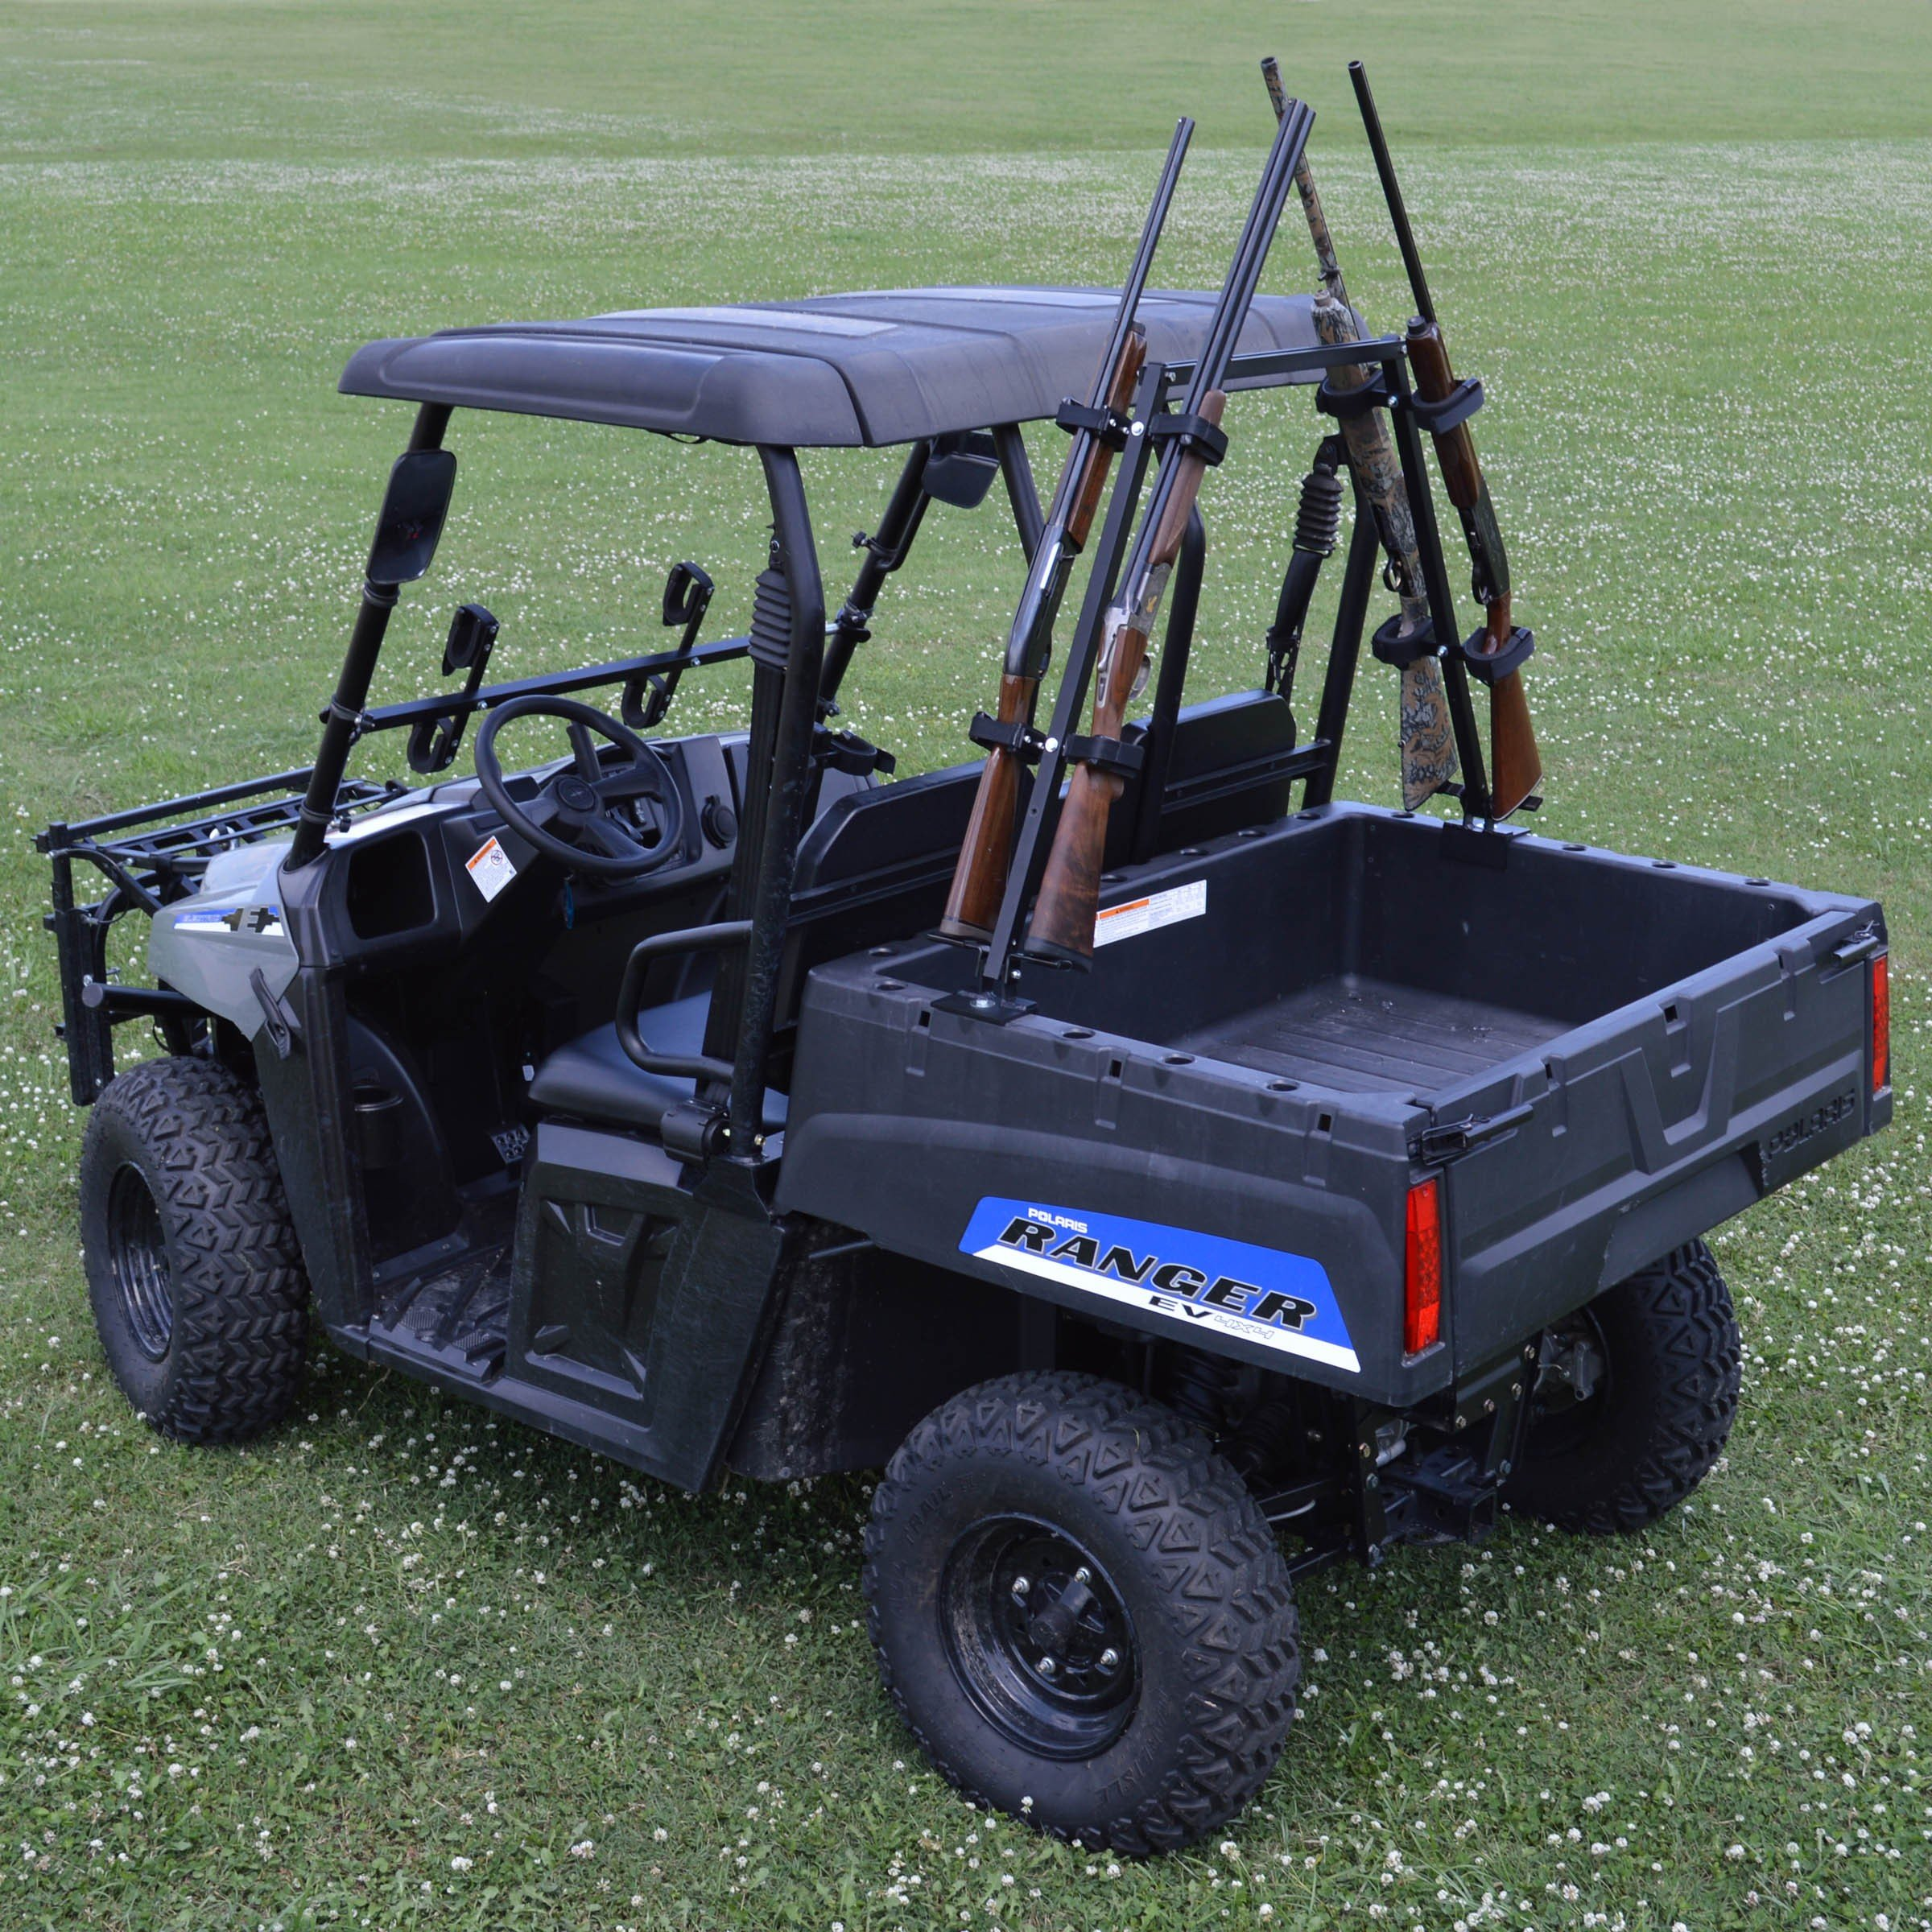 Polaris Ranger 570 2016 Sporting Clays UTV Gun Rack for Your Cargo Bed by Great Day (Image #1)